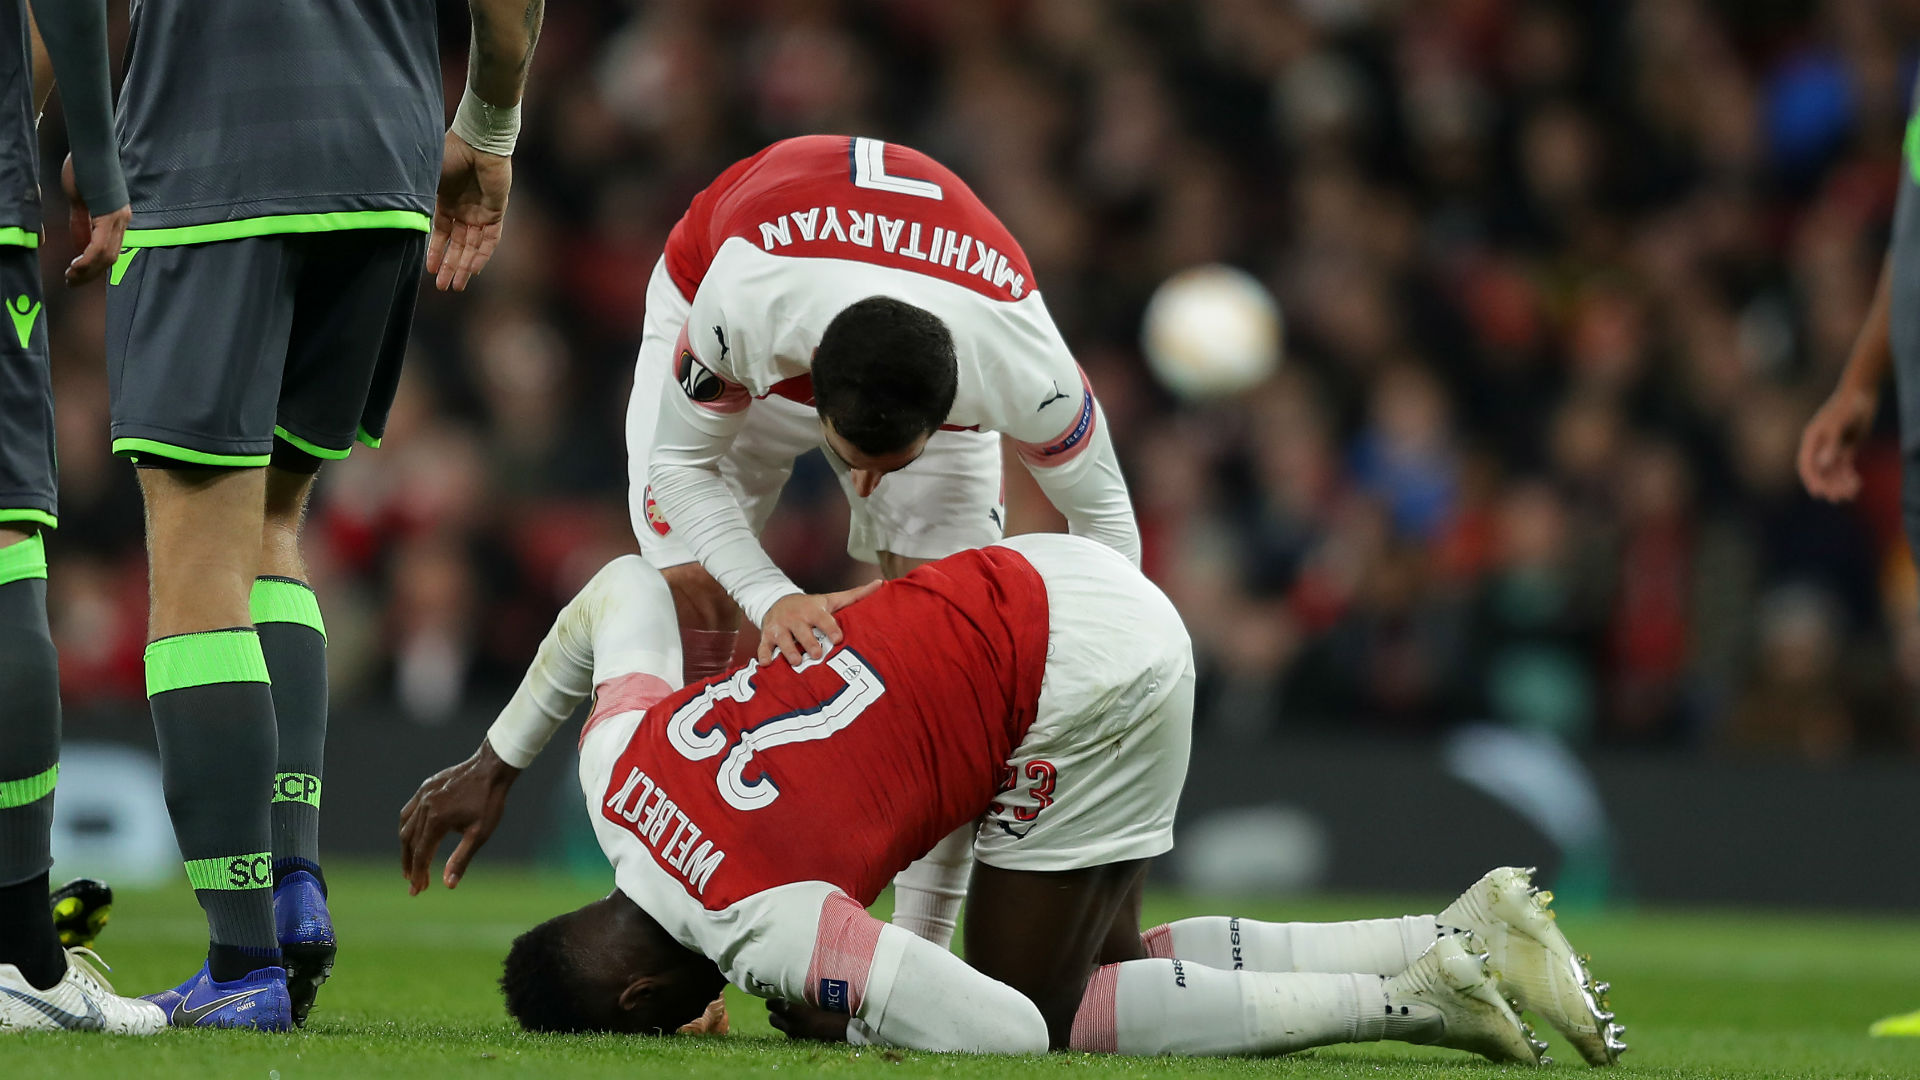 Welbeck back in Arsenal training after broken ankle